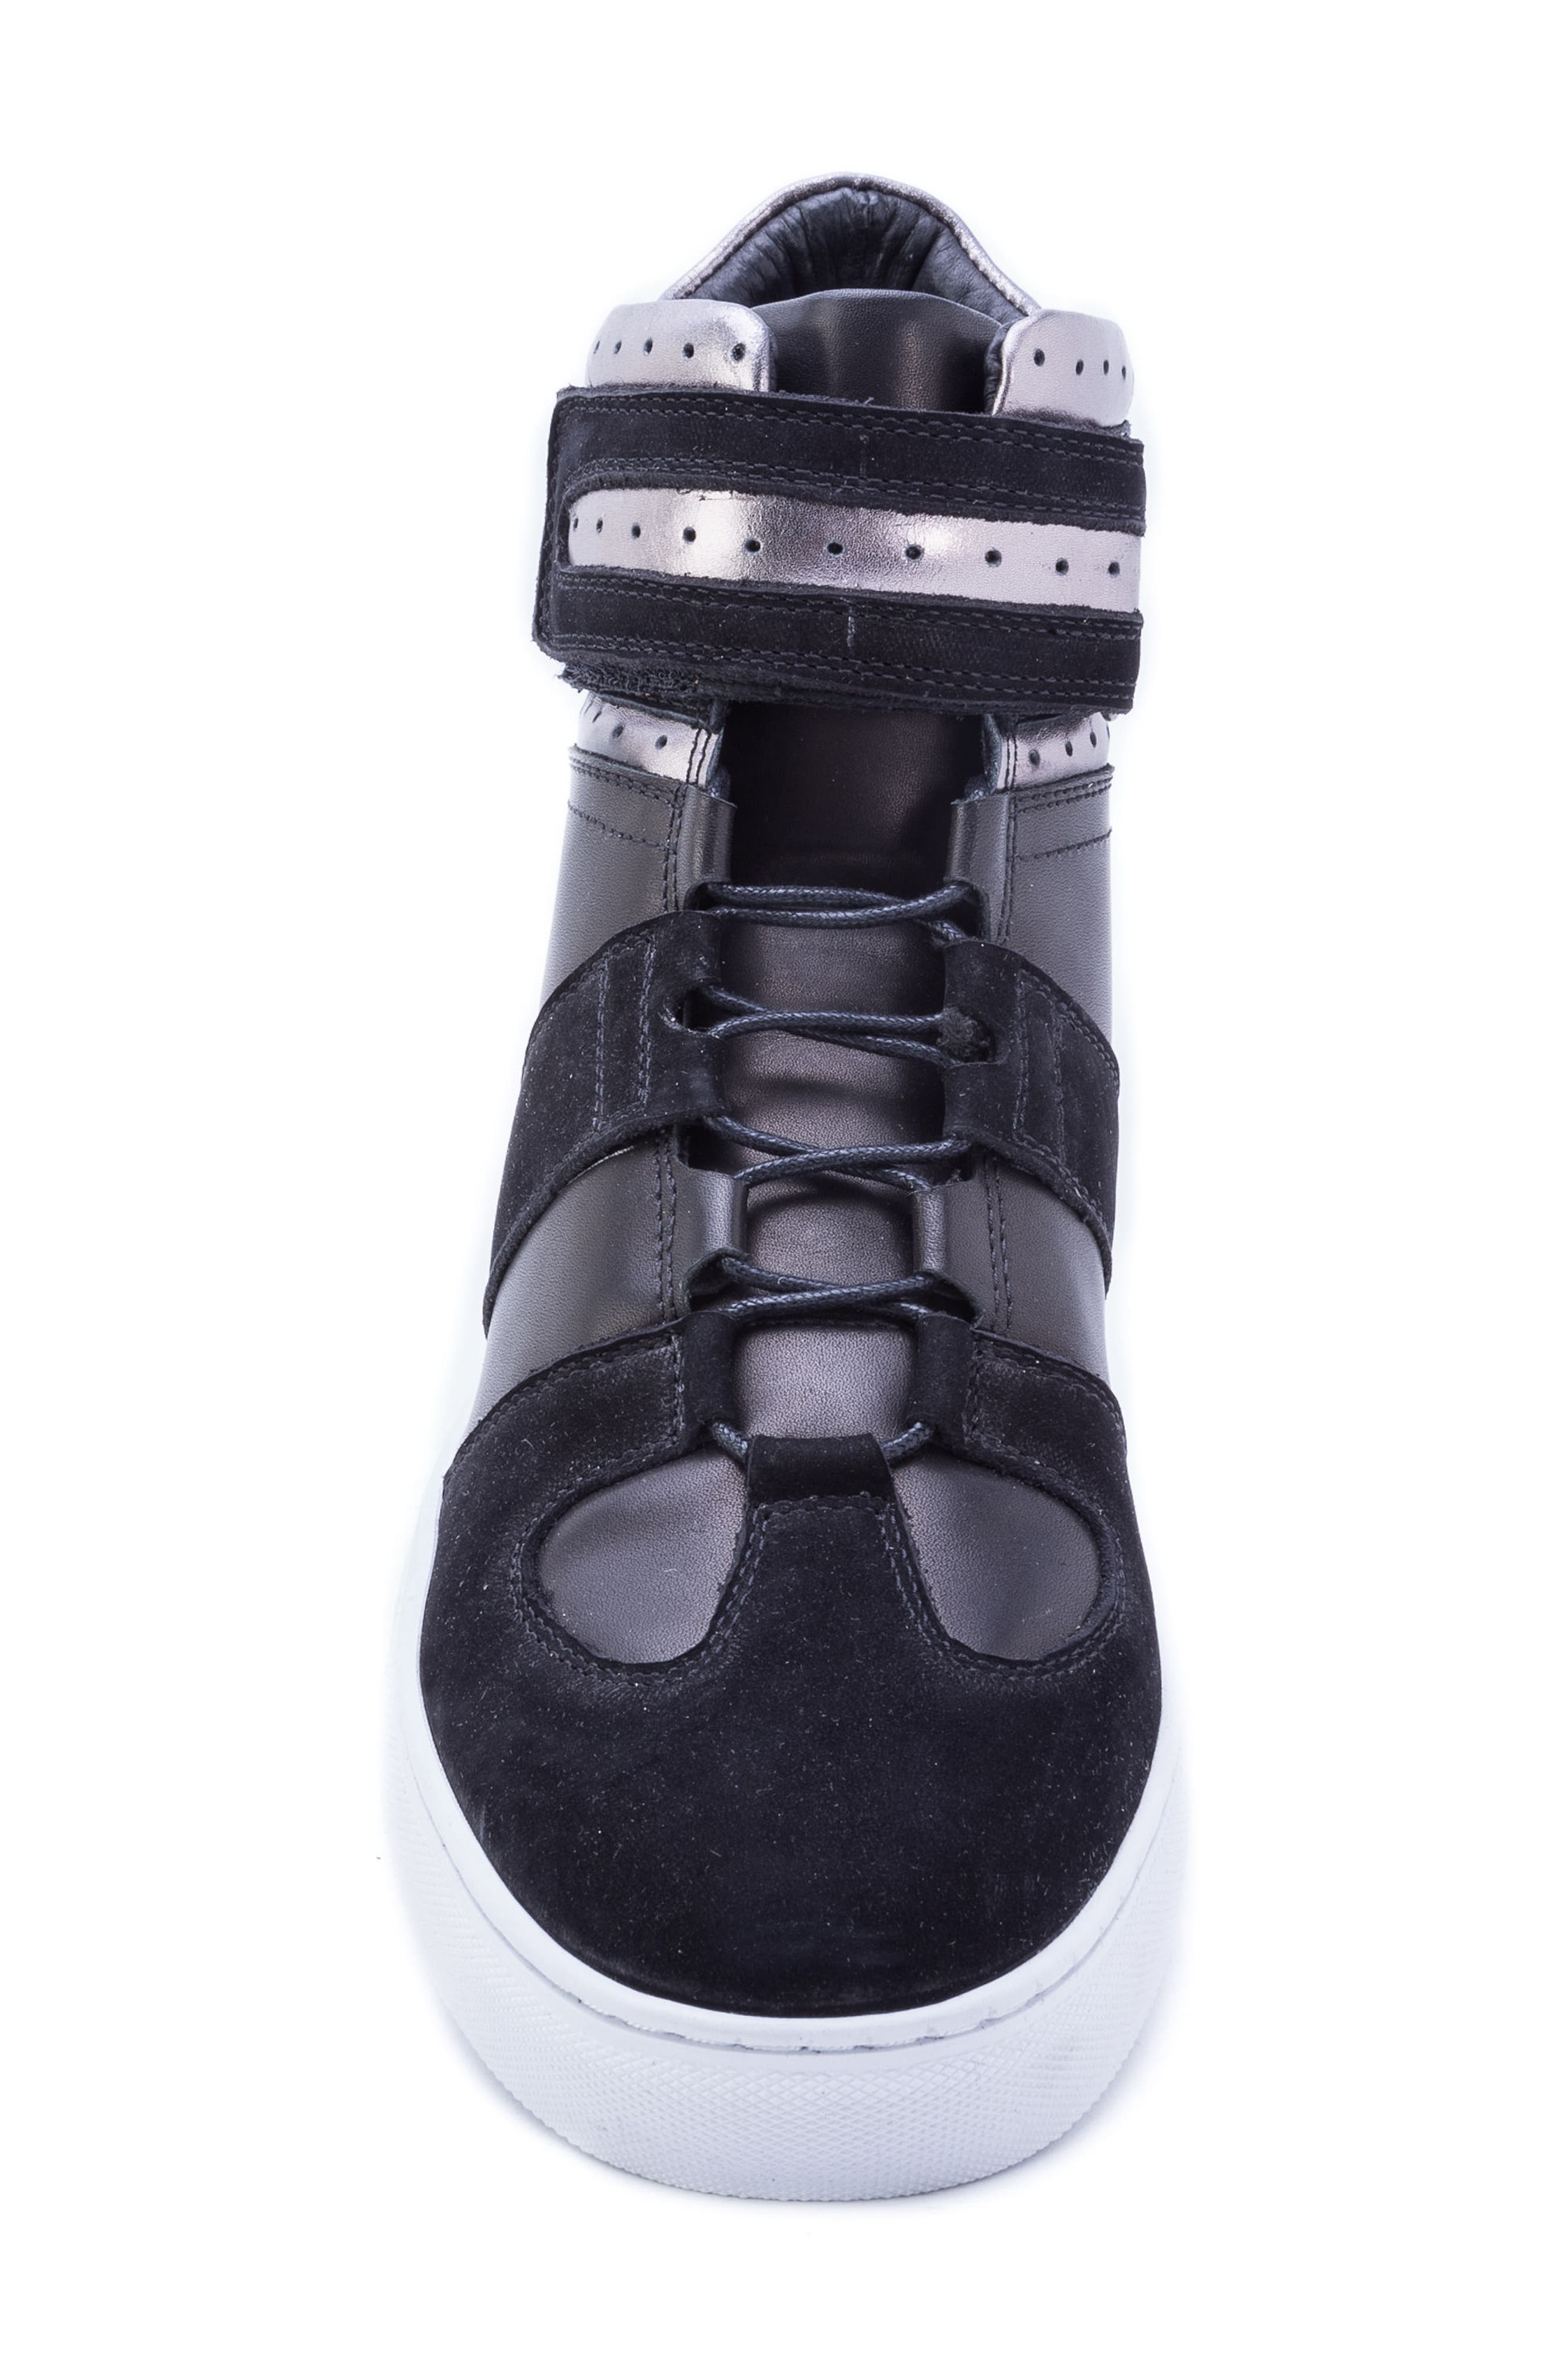 Belmondo High Top Sneaker,                             Alternate thumbnail 5, color,                             BLACK LEATHER/ SUEDE